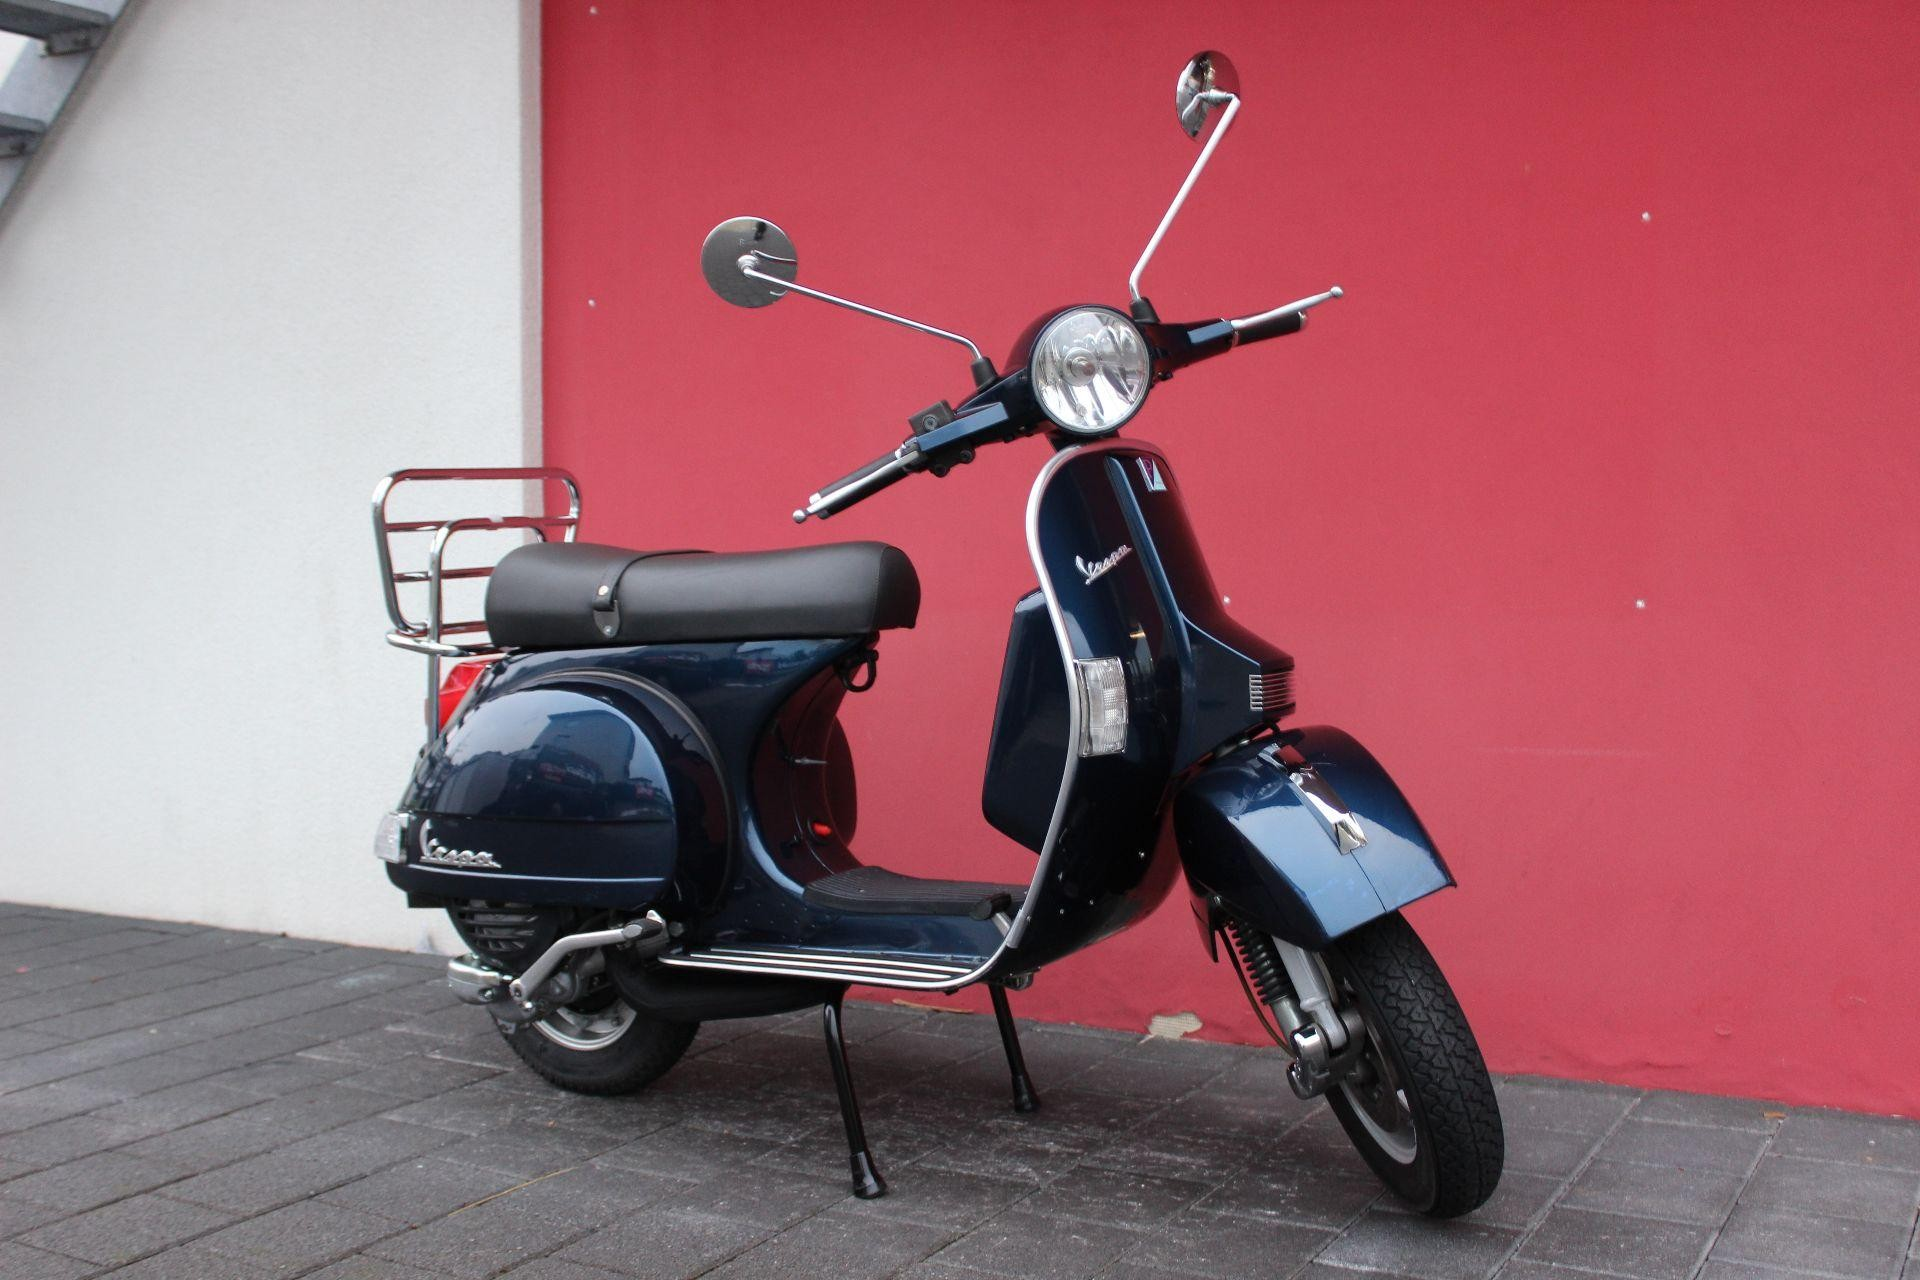 moto occasions acheter piaggio vespa px 125 e hans leupi gmbh meggen. Black Bedroom Furniture Sets. Home Design Ideas